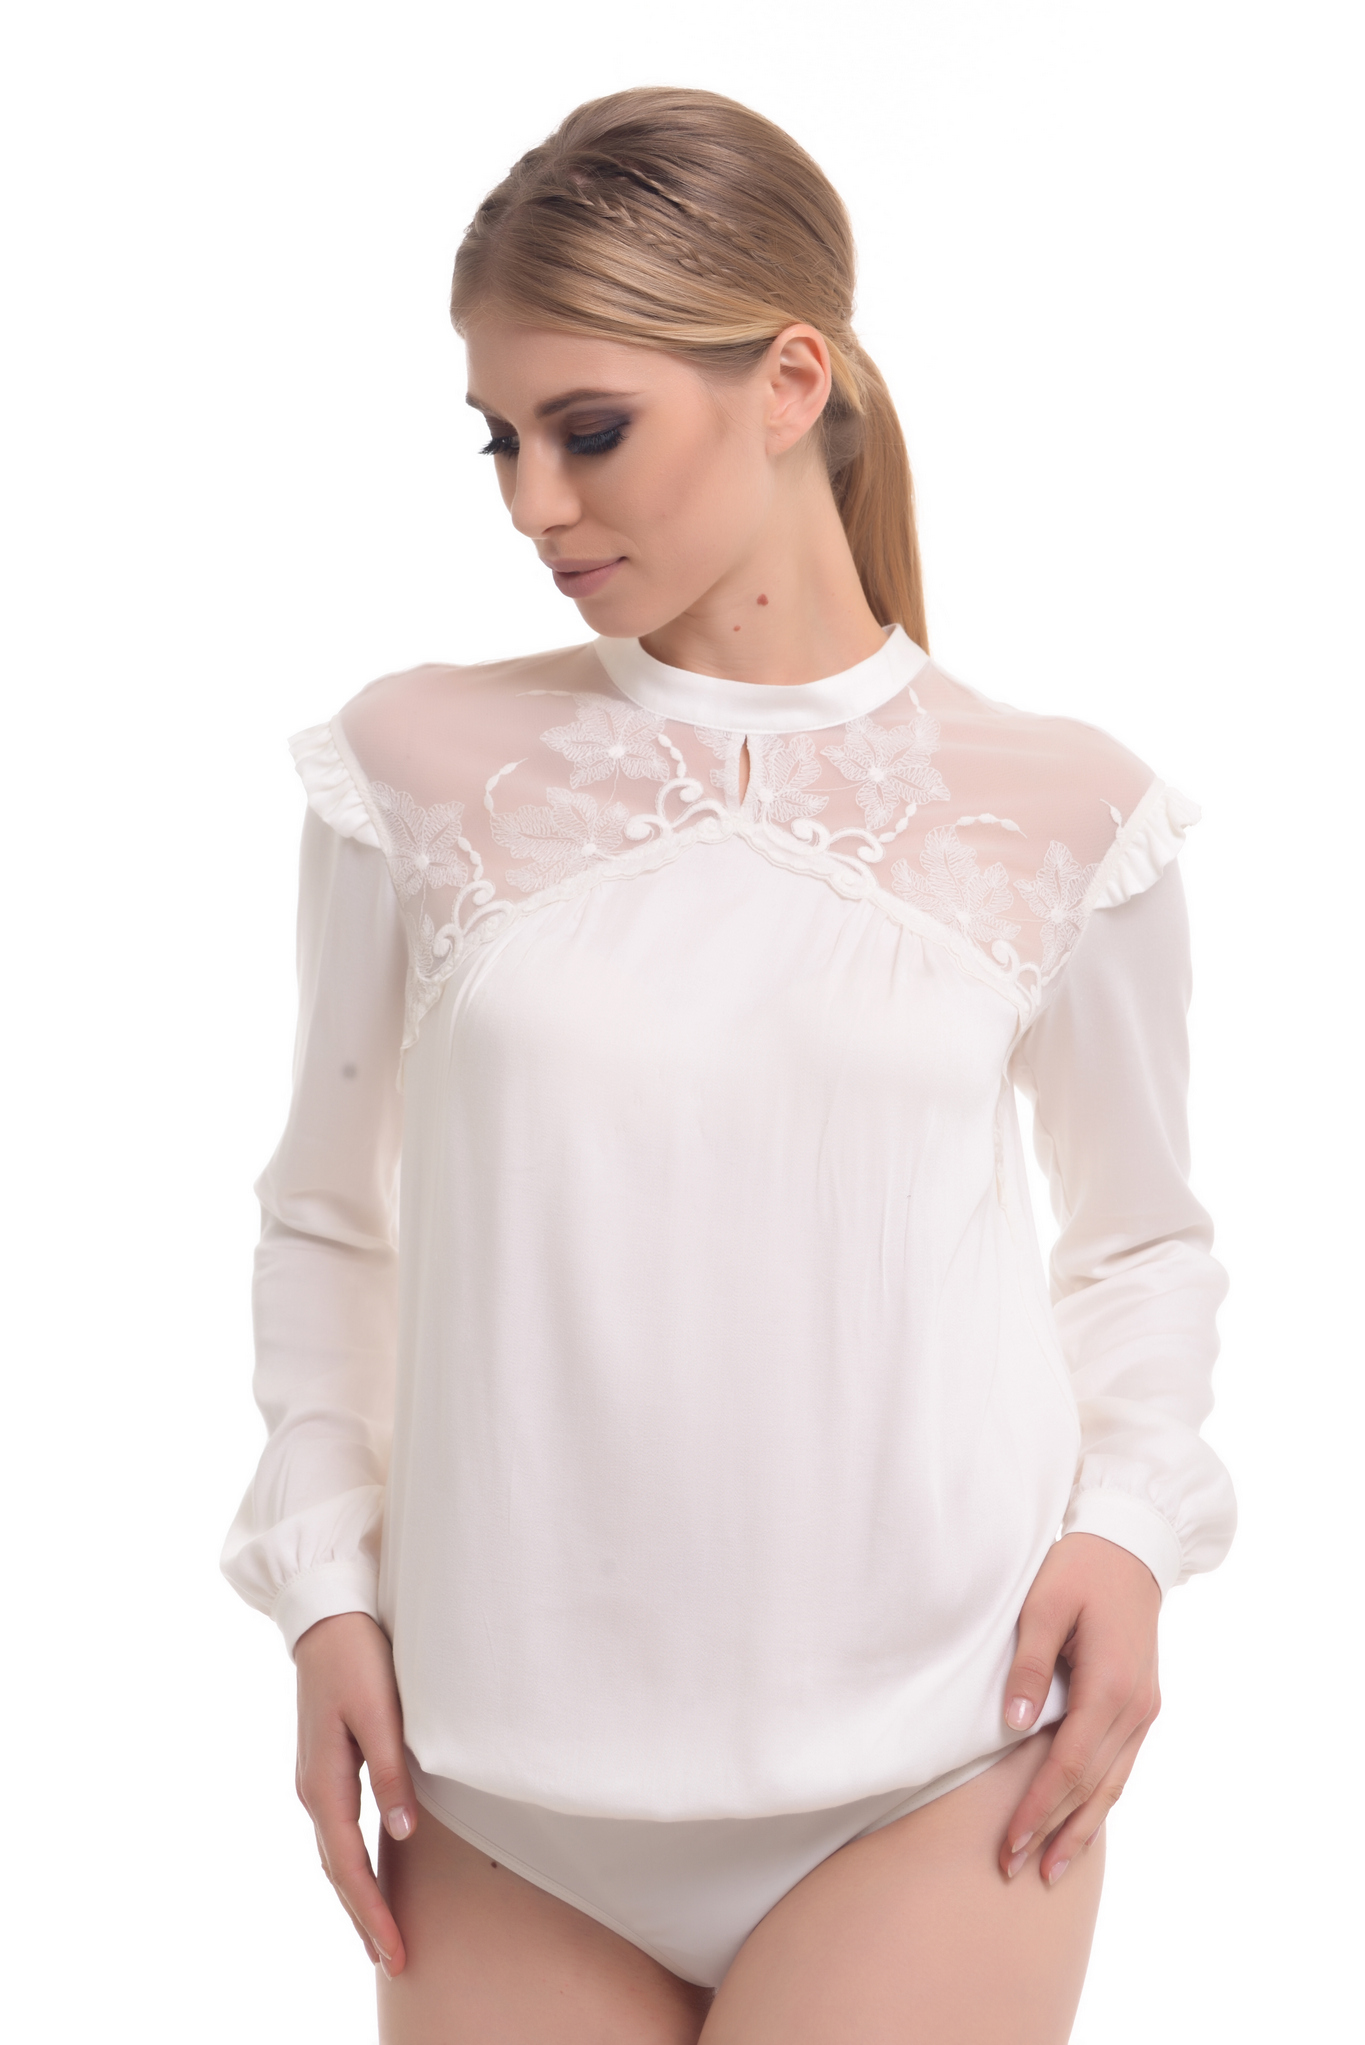 Buy Women White blouse body for Summer, Long sleeve Business Office clothies by Arefeva